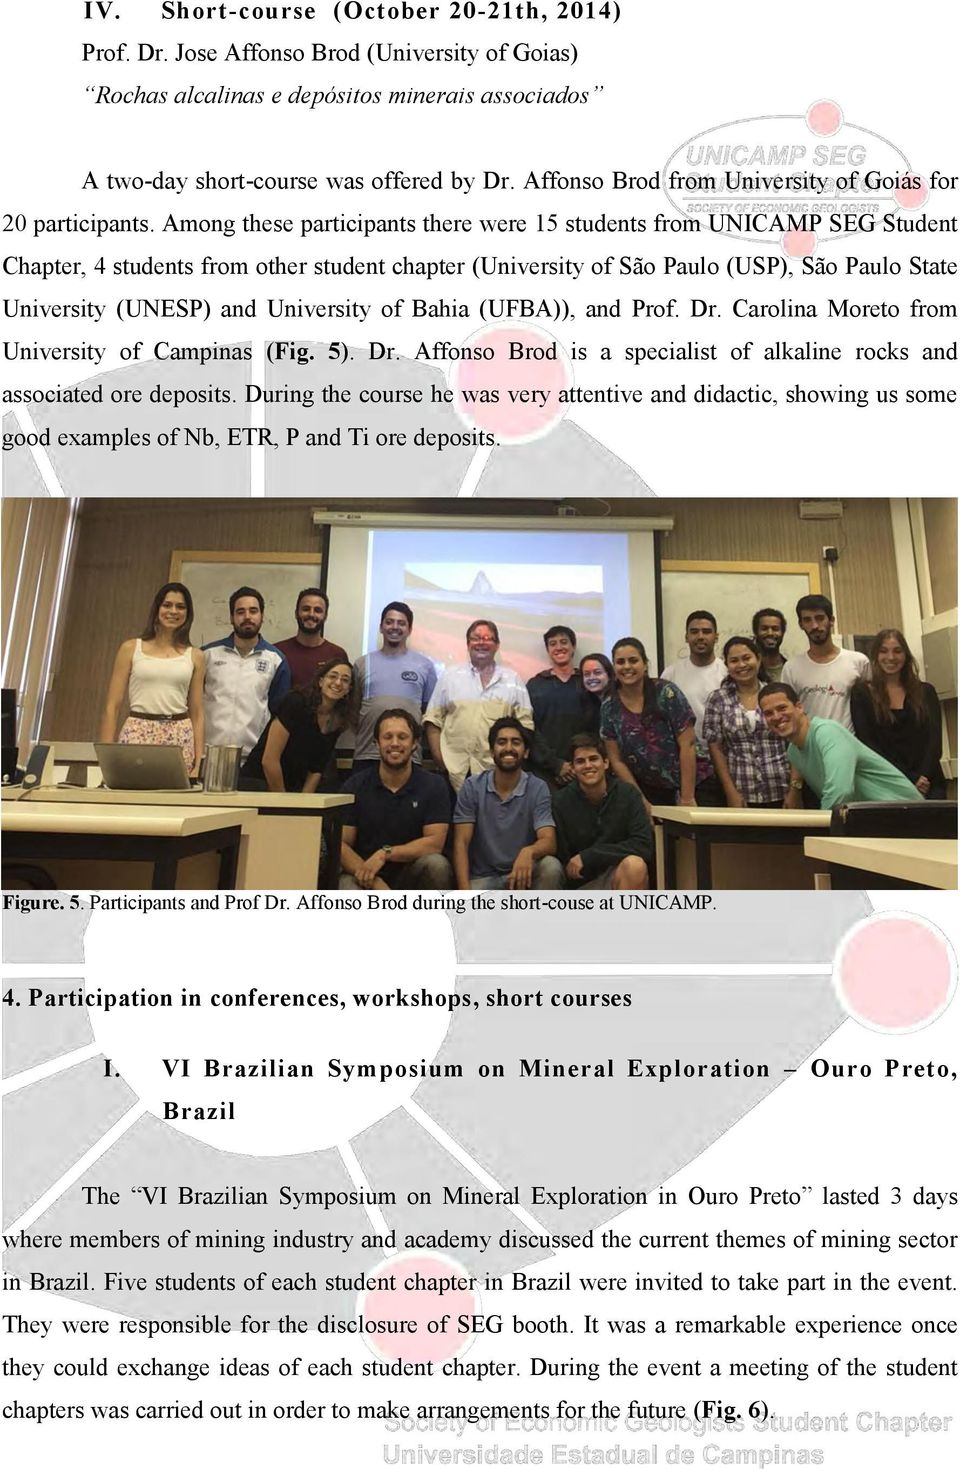 Among these participants there were 15 students from UNICAMP SEG Student Chapter, 4 students from other student chapter (University of São Paulo (USP), São Paulo State University (UNESP) and